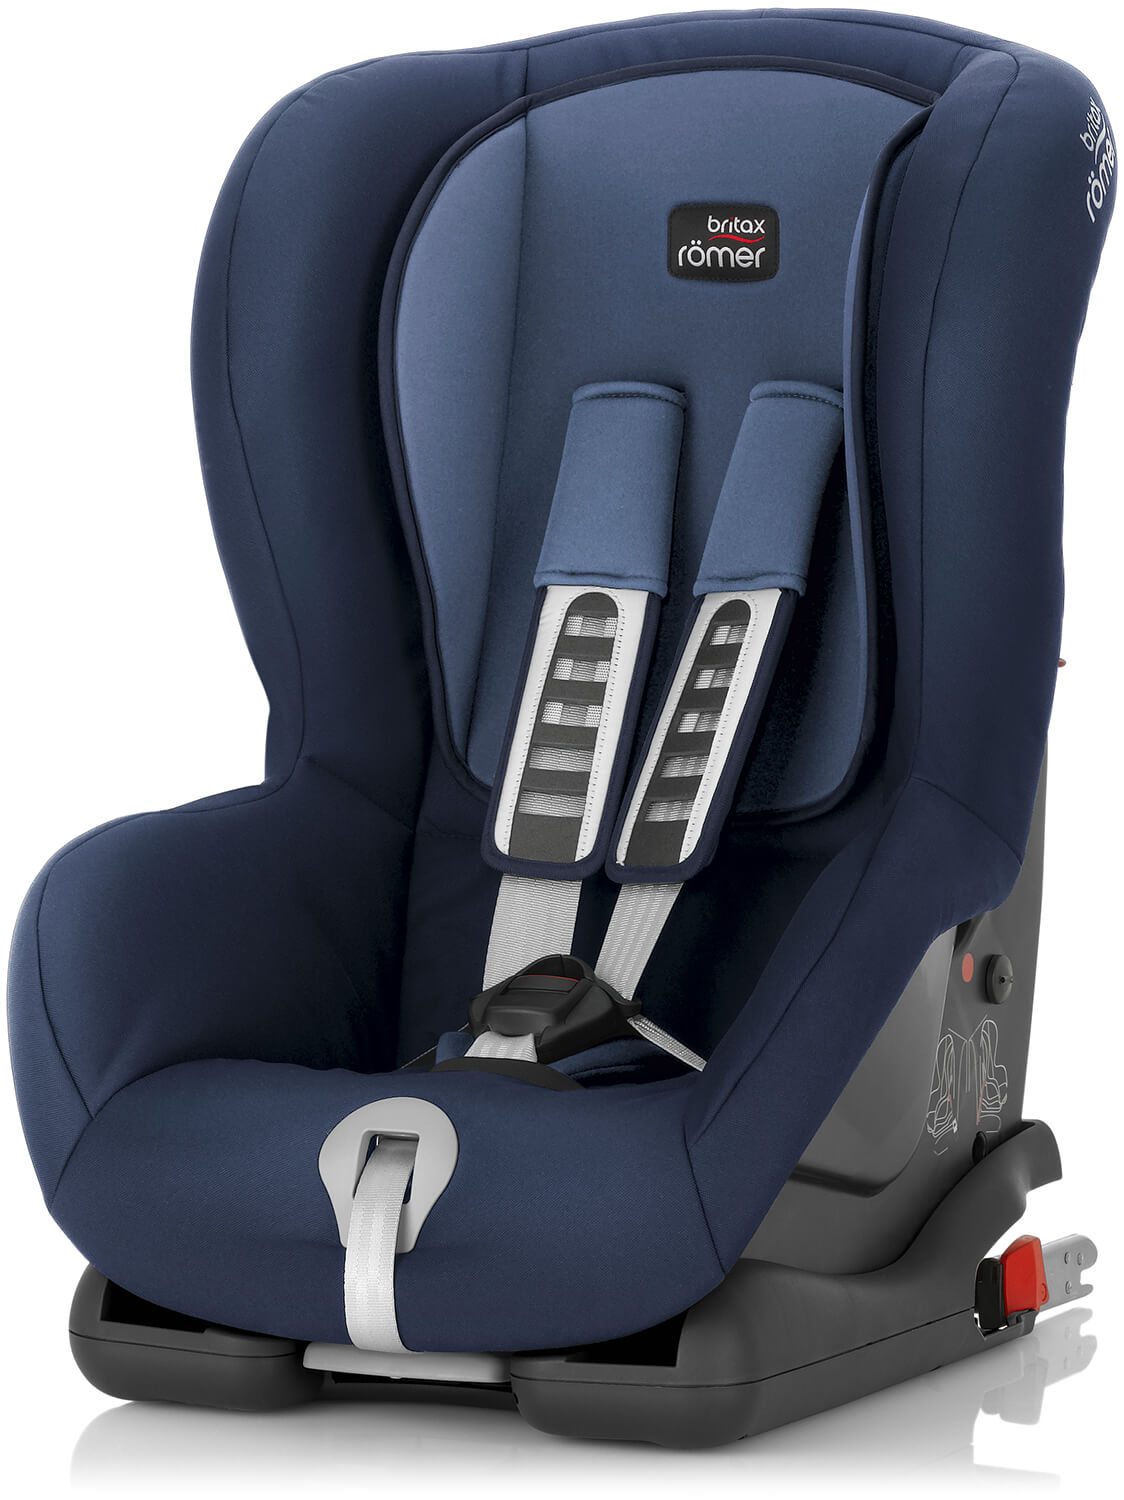 britax r mer duo plus moonlight blue child seat 2018. Black Bedroom Furniture Sets. Home Design Ideas